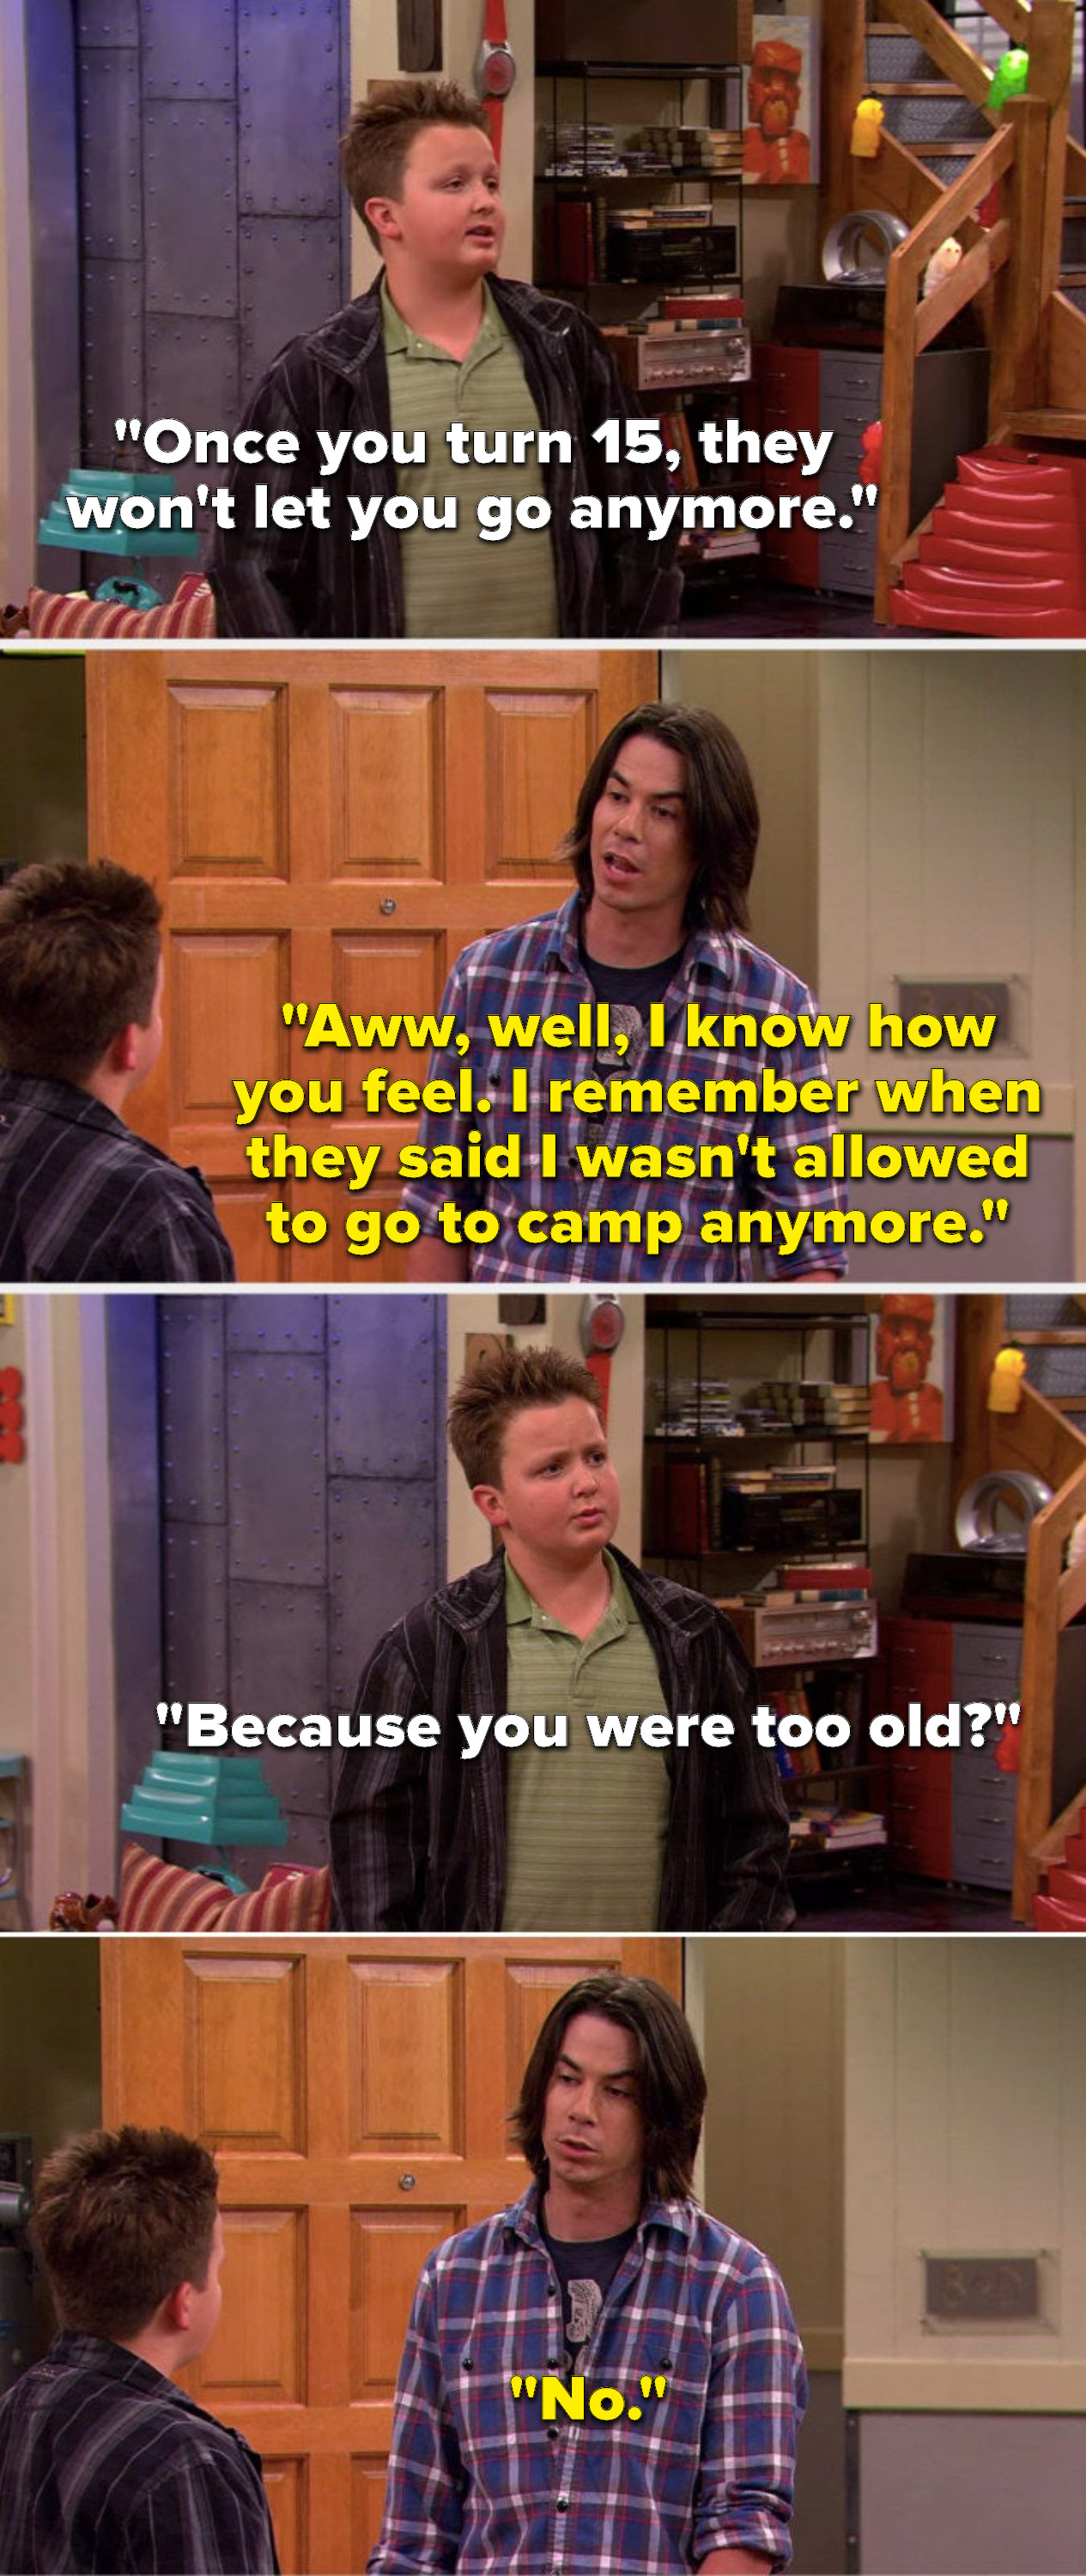 """Gibby says, """"Once you turn 15, they won't let you go anymore,"""" Spencer says, """"Aww, well, I know how you feel, I remember when they said I wasn't allowed to go to camp anymore,"""" Gibby asks, """"Because you were too old?"""" and Spencer says, """"No"""""""